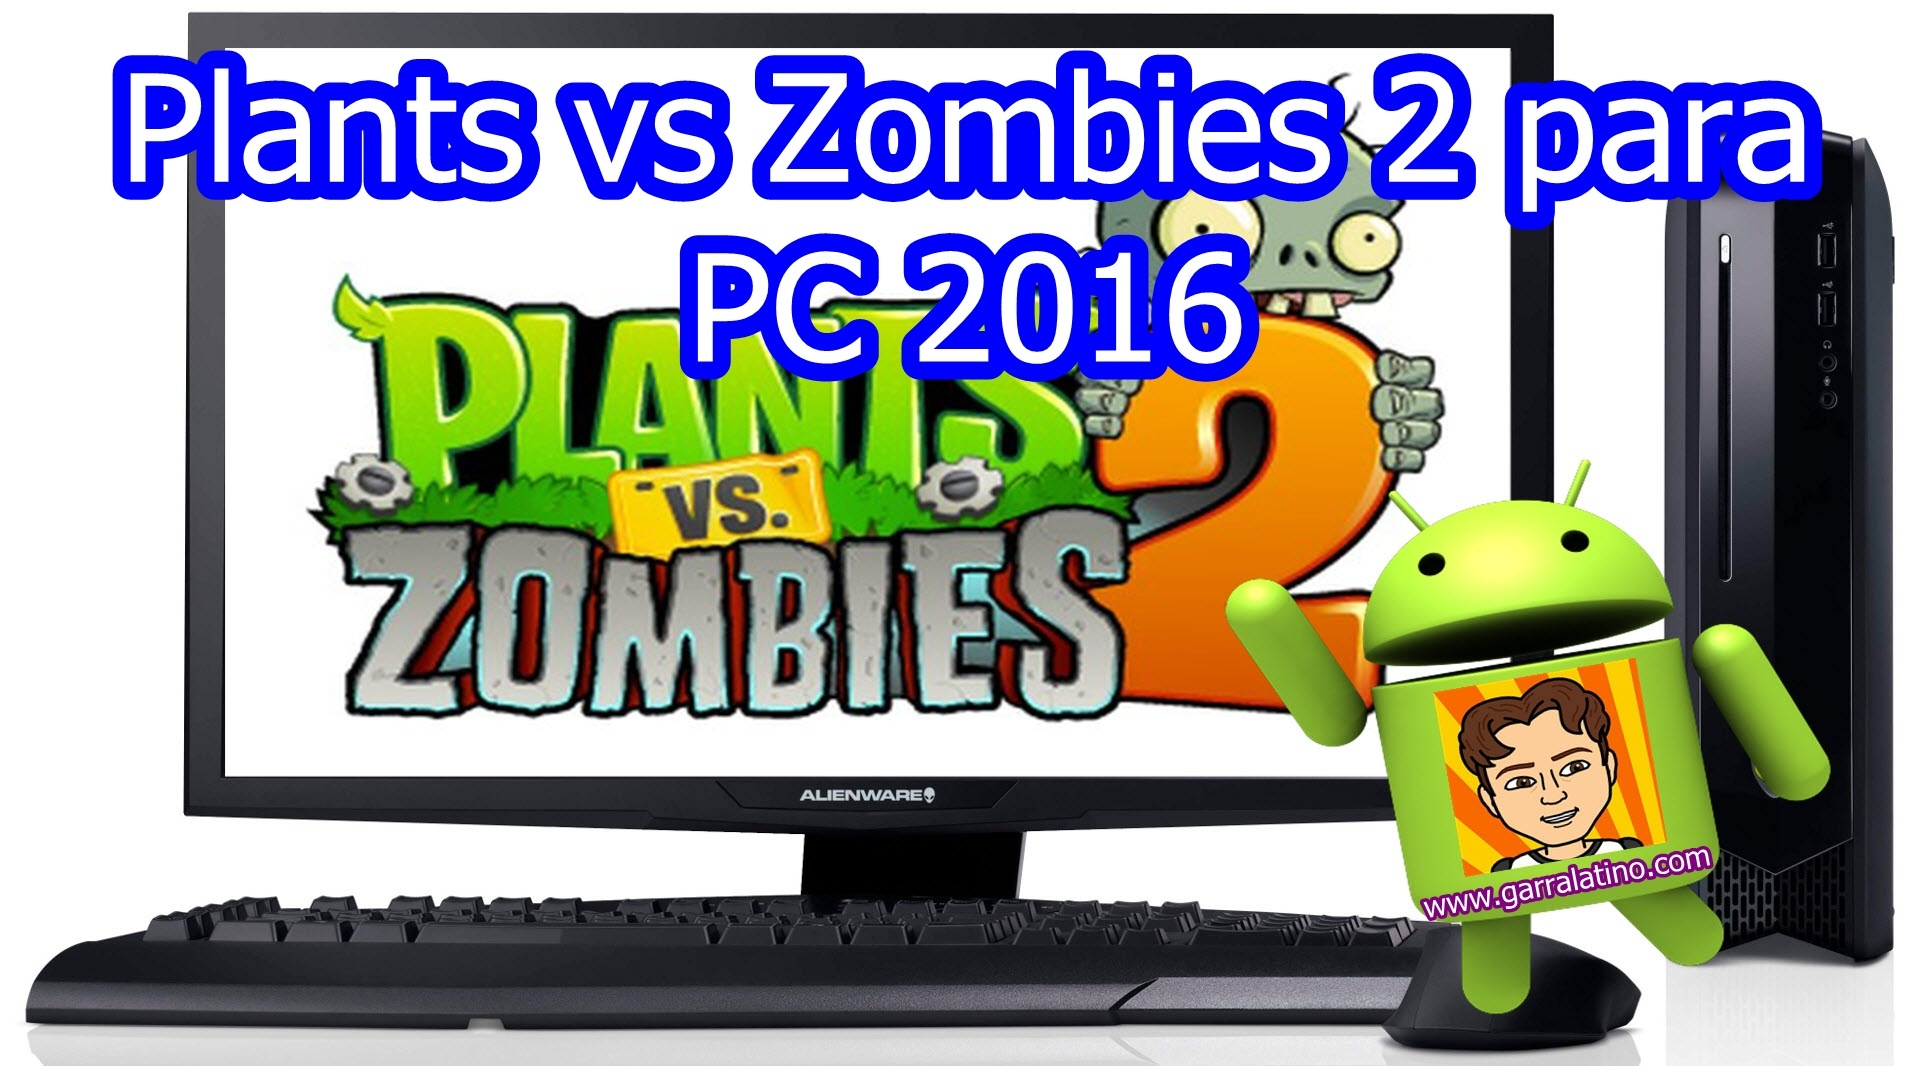 Plants vs Zombies 2 PC 2016